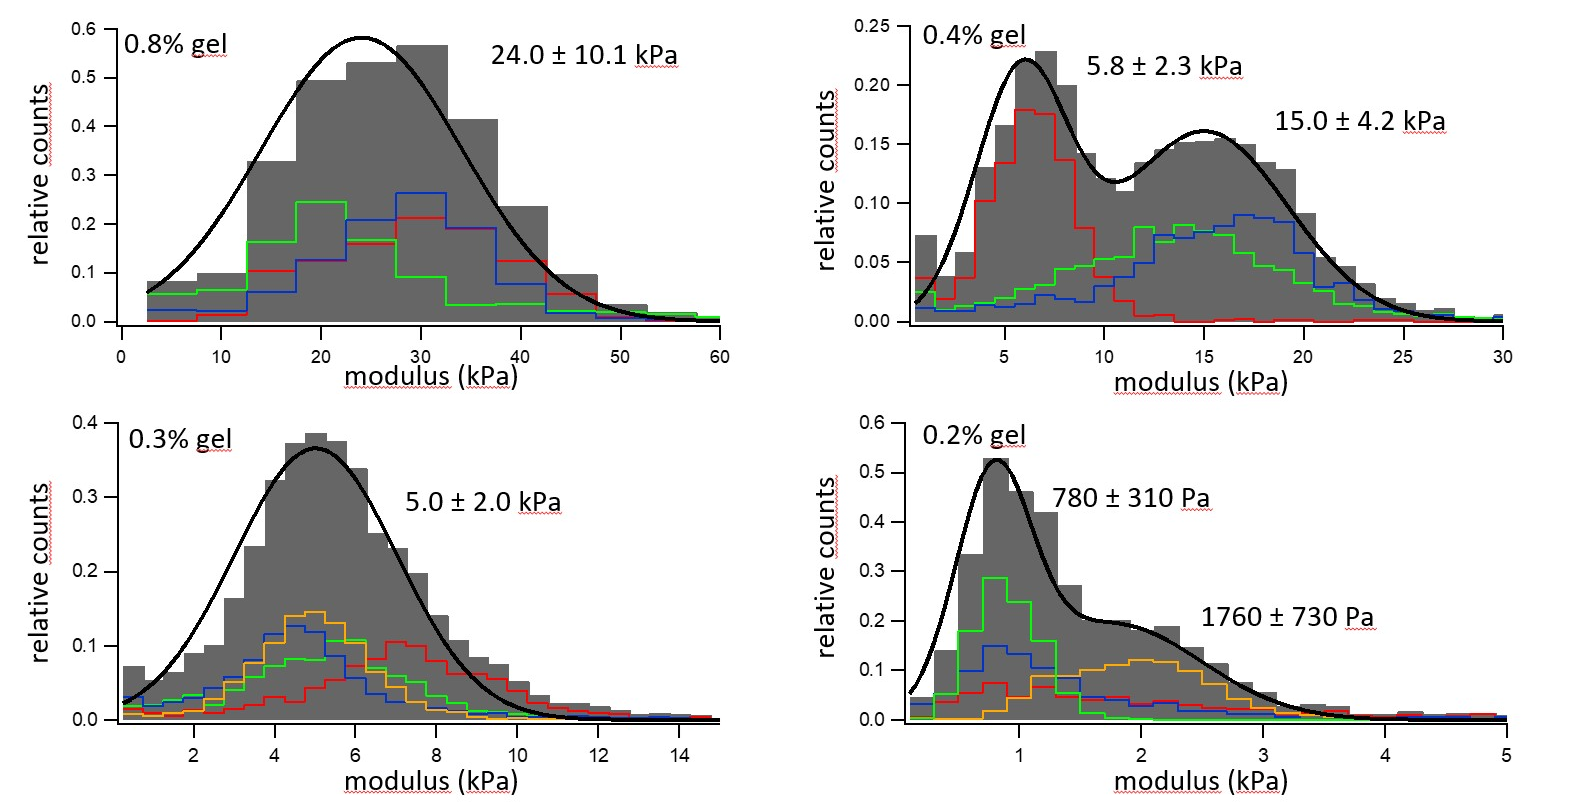 Elastic modulus distribution of four hydrogels with different concentrations of gelatin.